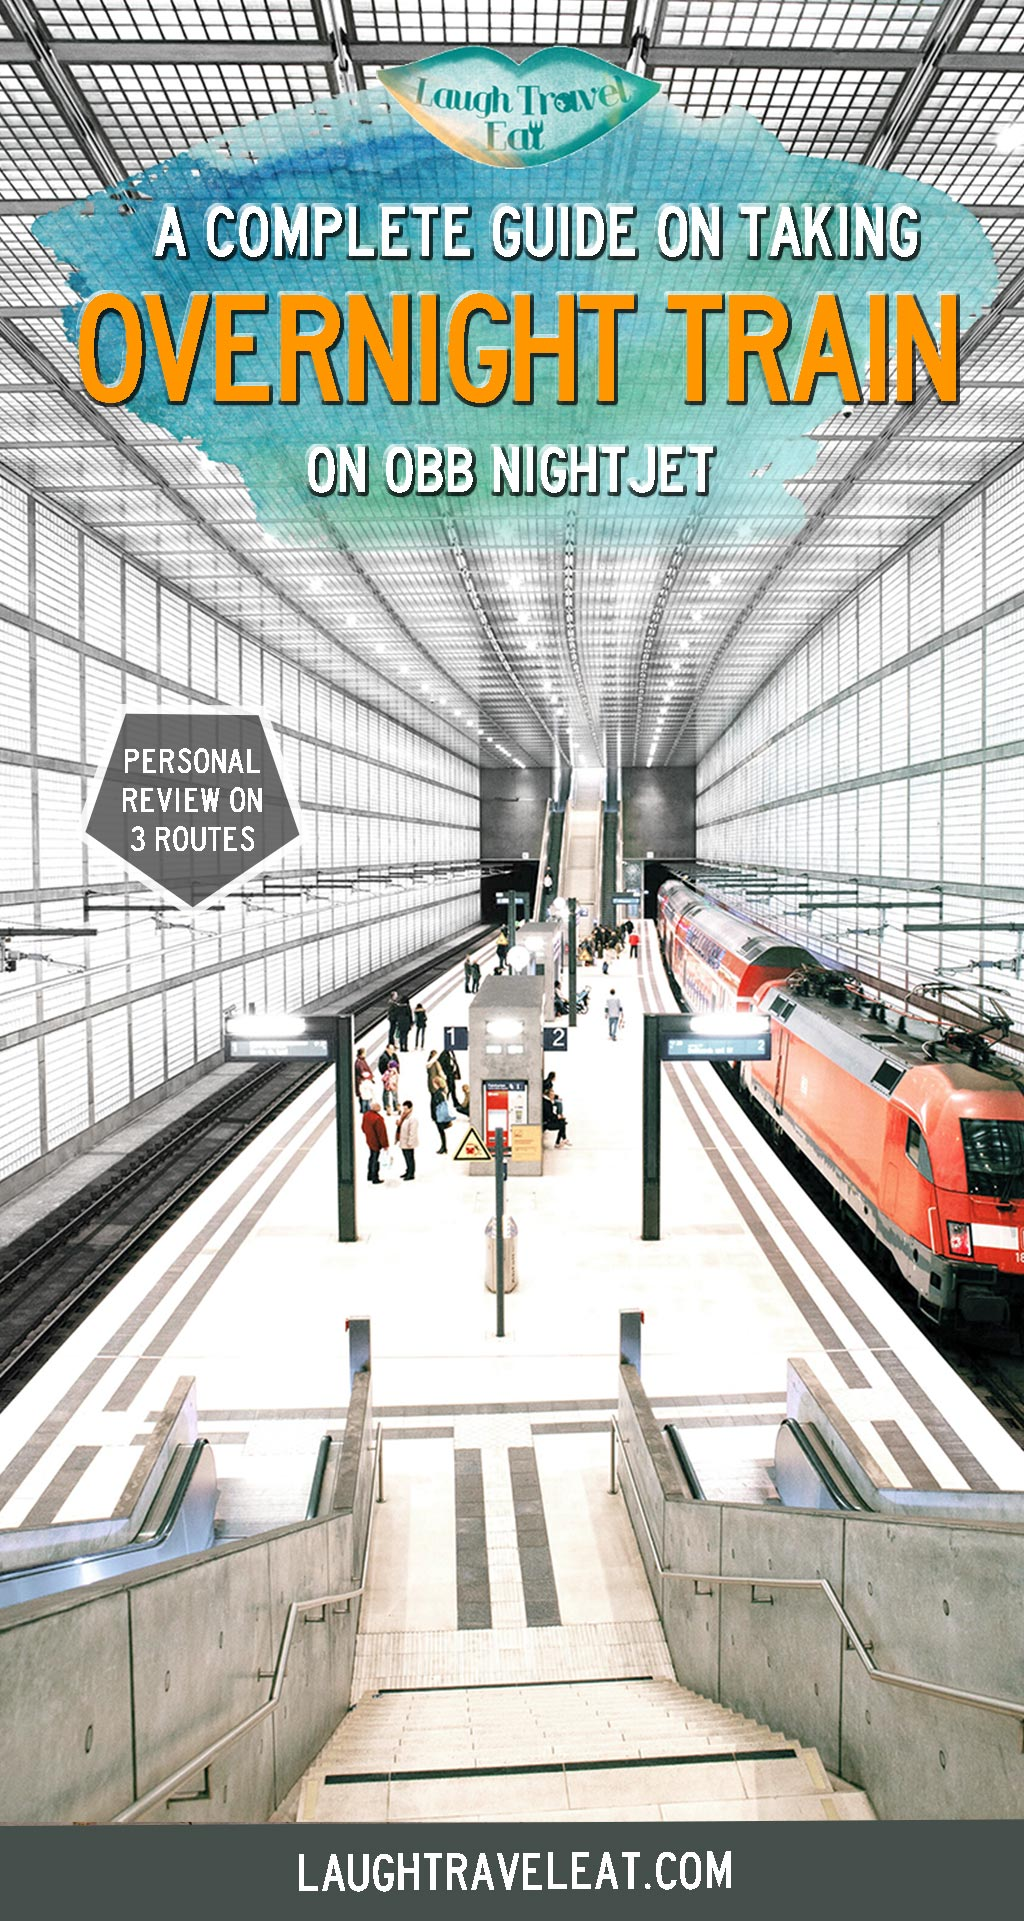 There are many night trains routes that can take you from one point of Europe to another overnight, so you can wake up in a new city without spending extra on hotel and arriving right in the center. On my recent 6 weeks trip, I took 3 night train and here's how to book a night train, where the routes run, and what my experience is: #Europe #train #nightrain